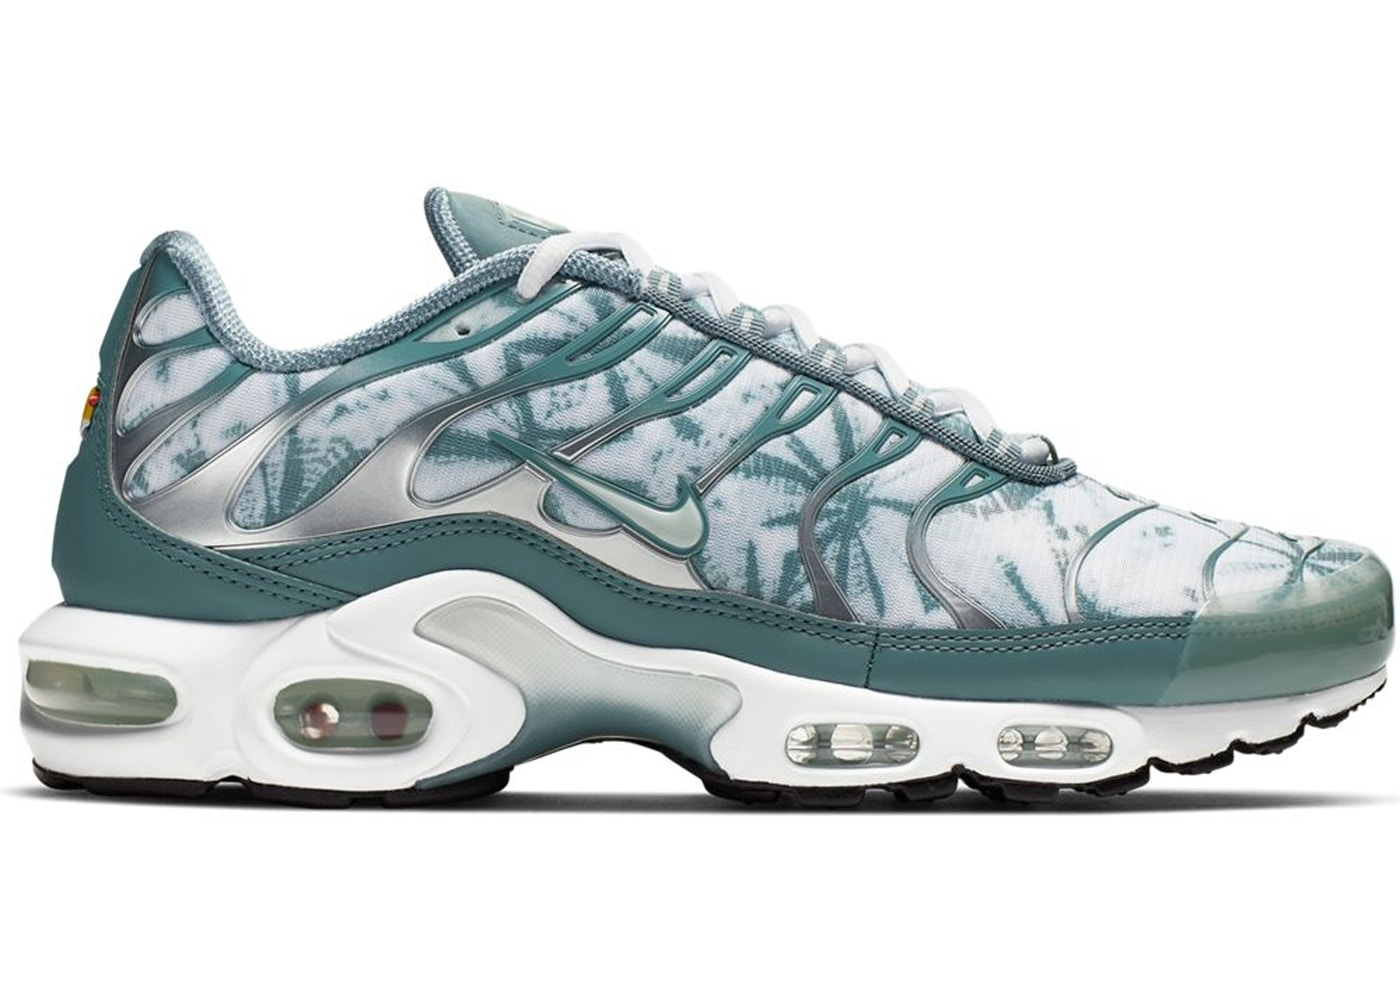 Nike Air Max Plus Palm Trees Green